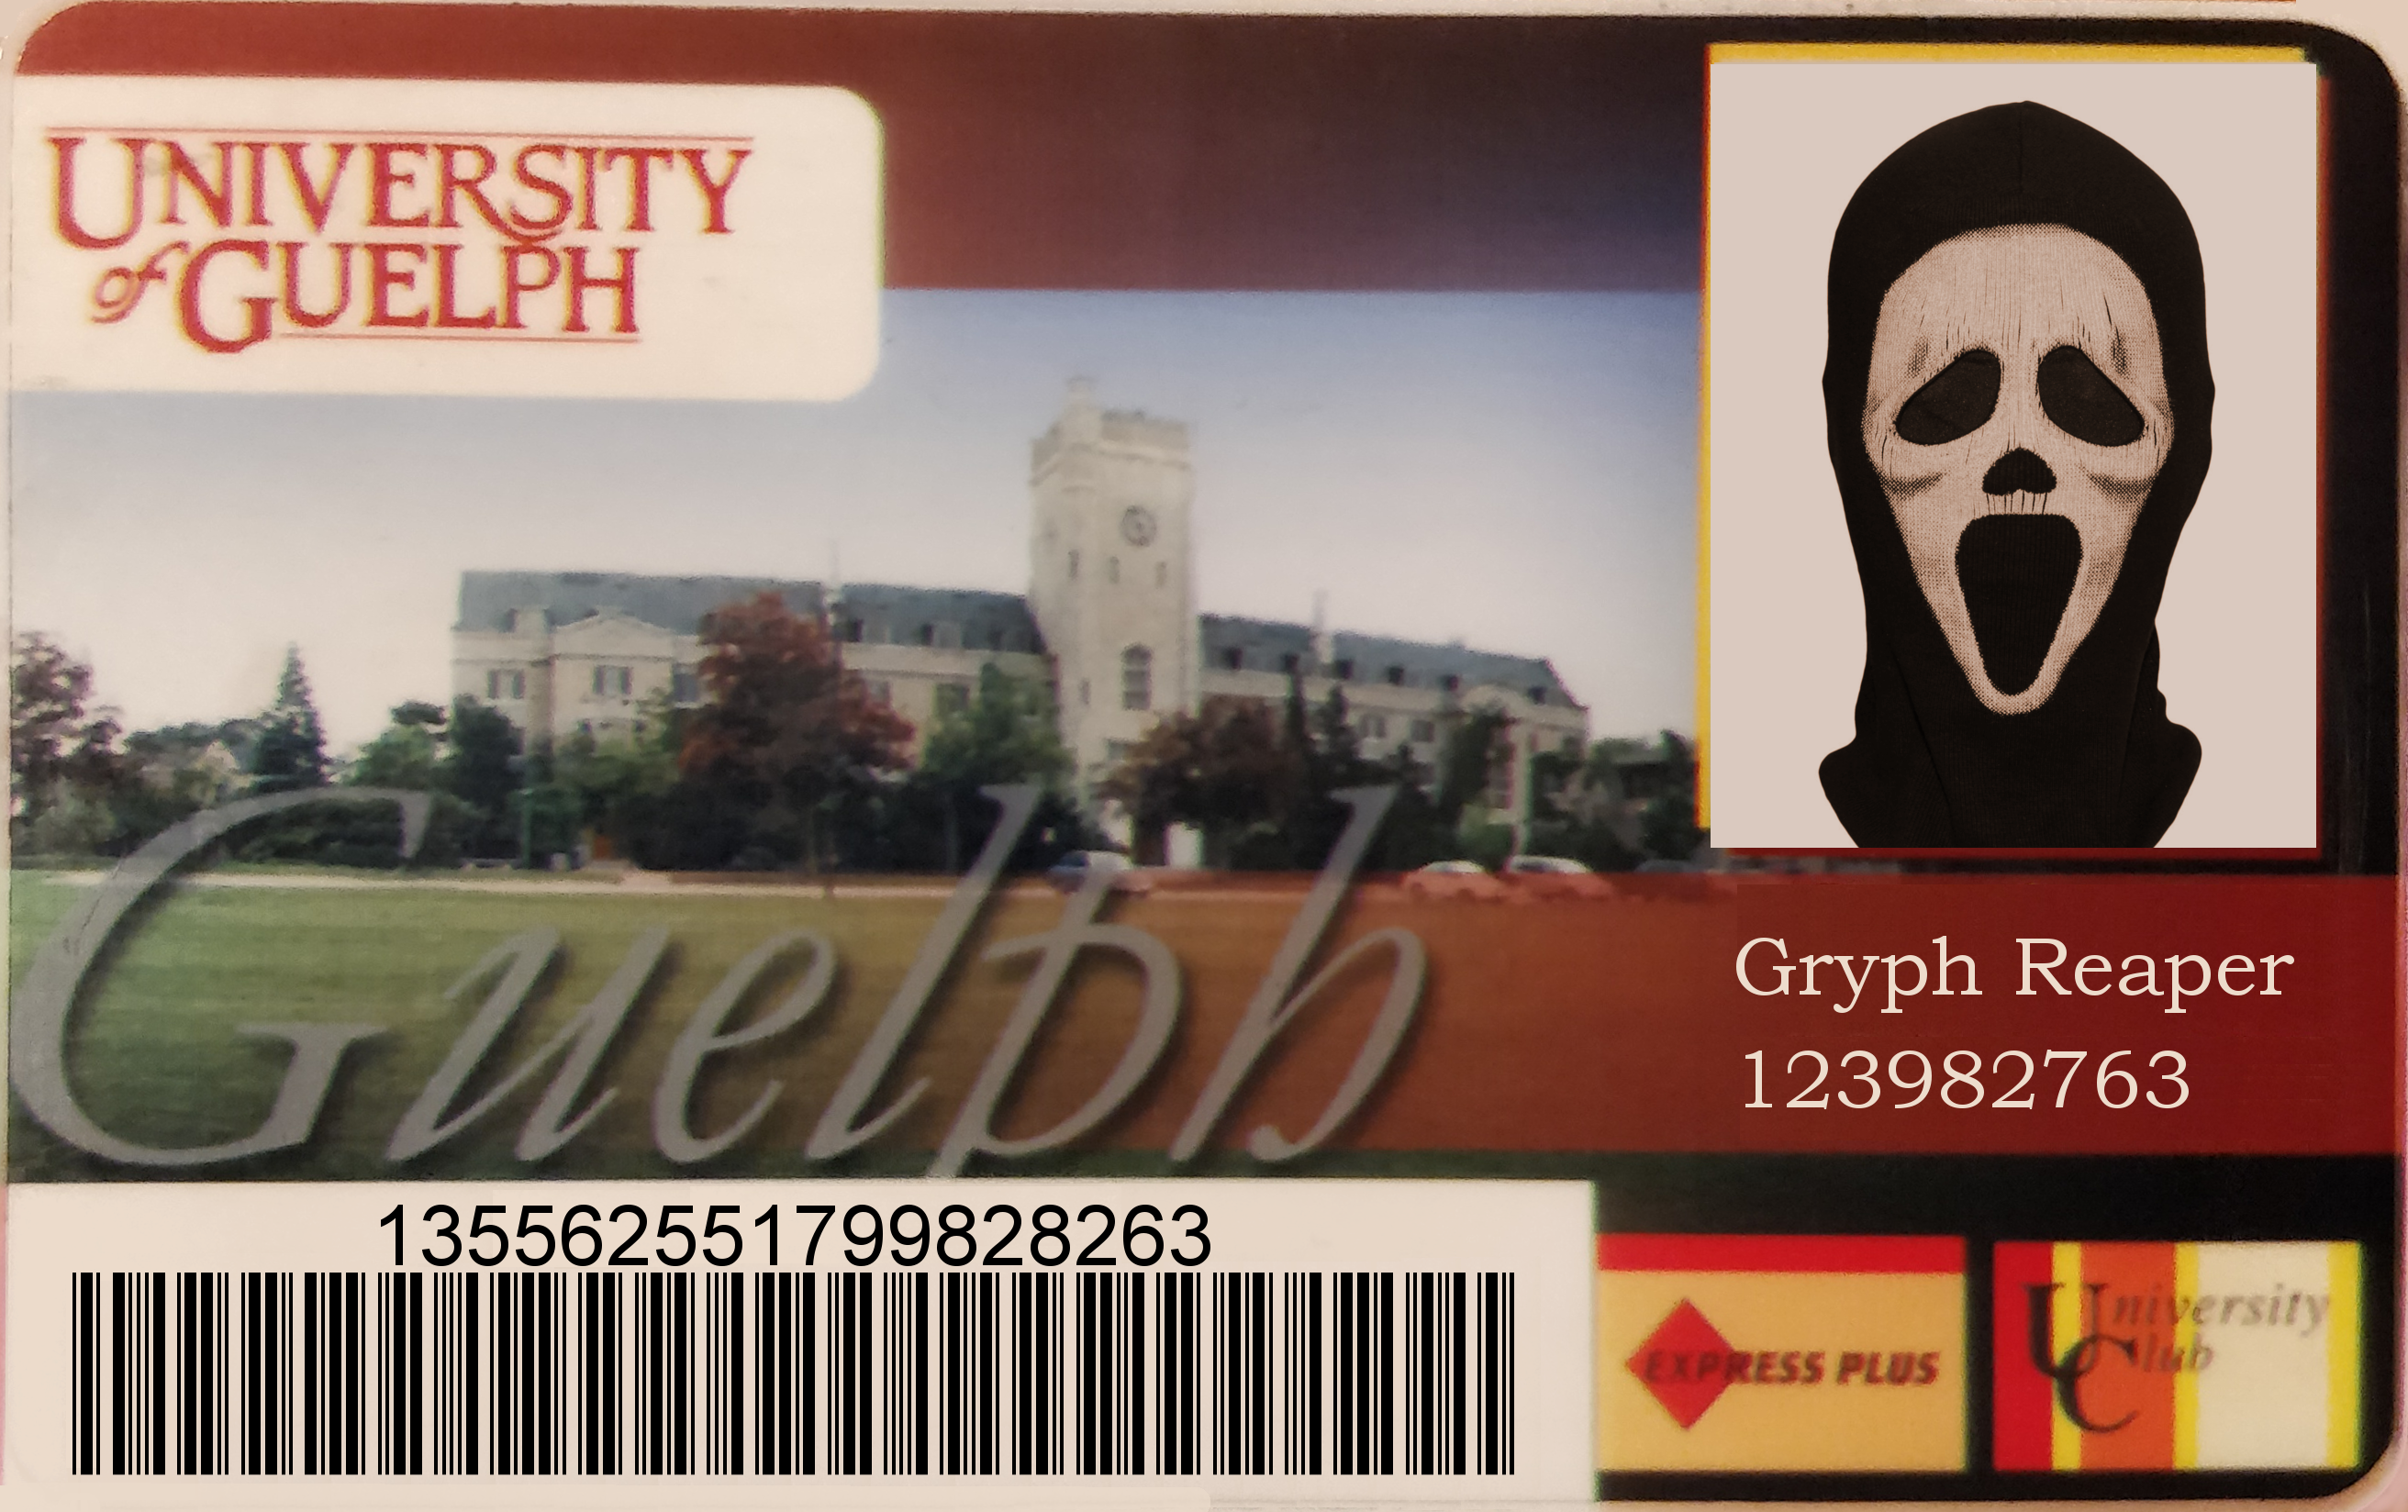 GryphReaper impersonation on University of Guelph ID card